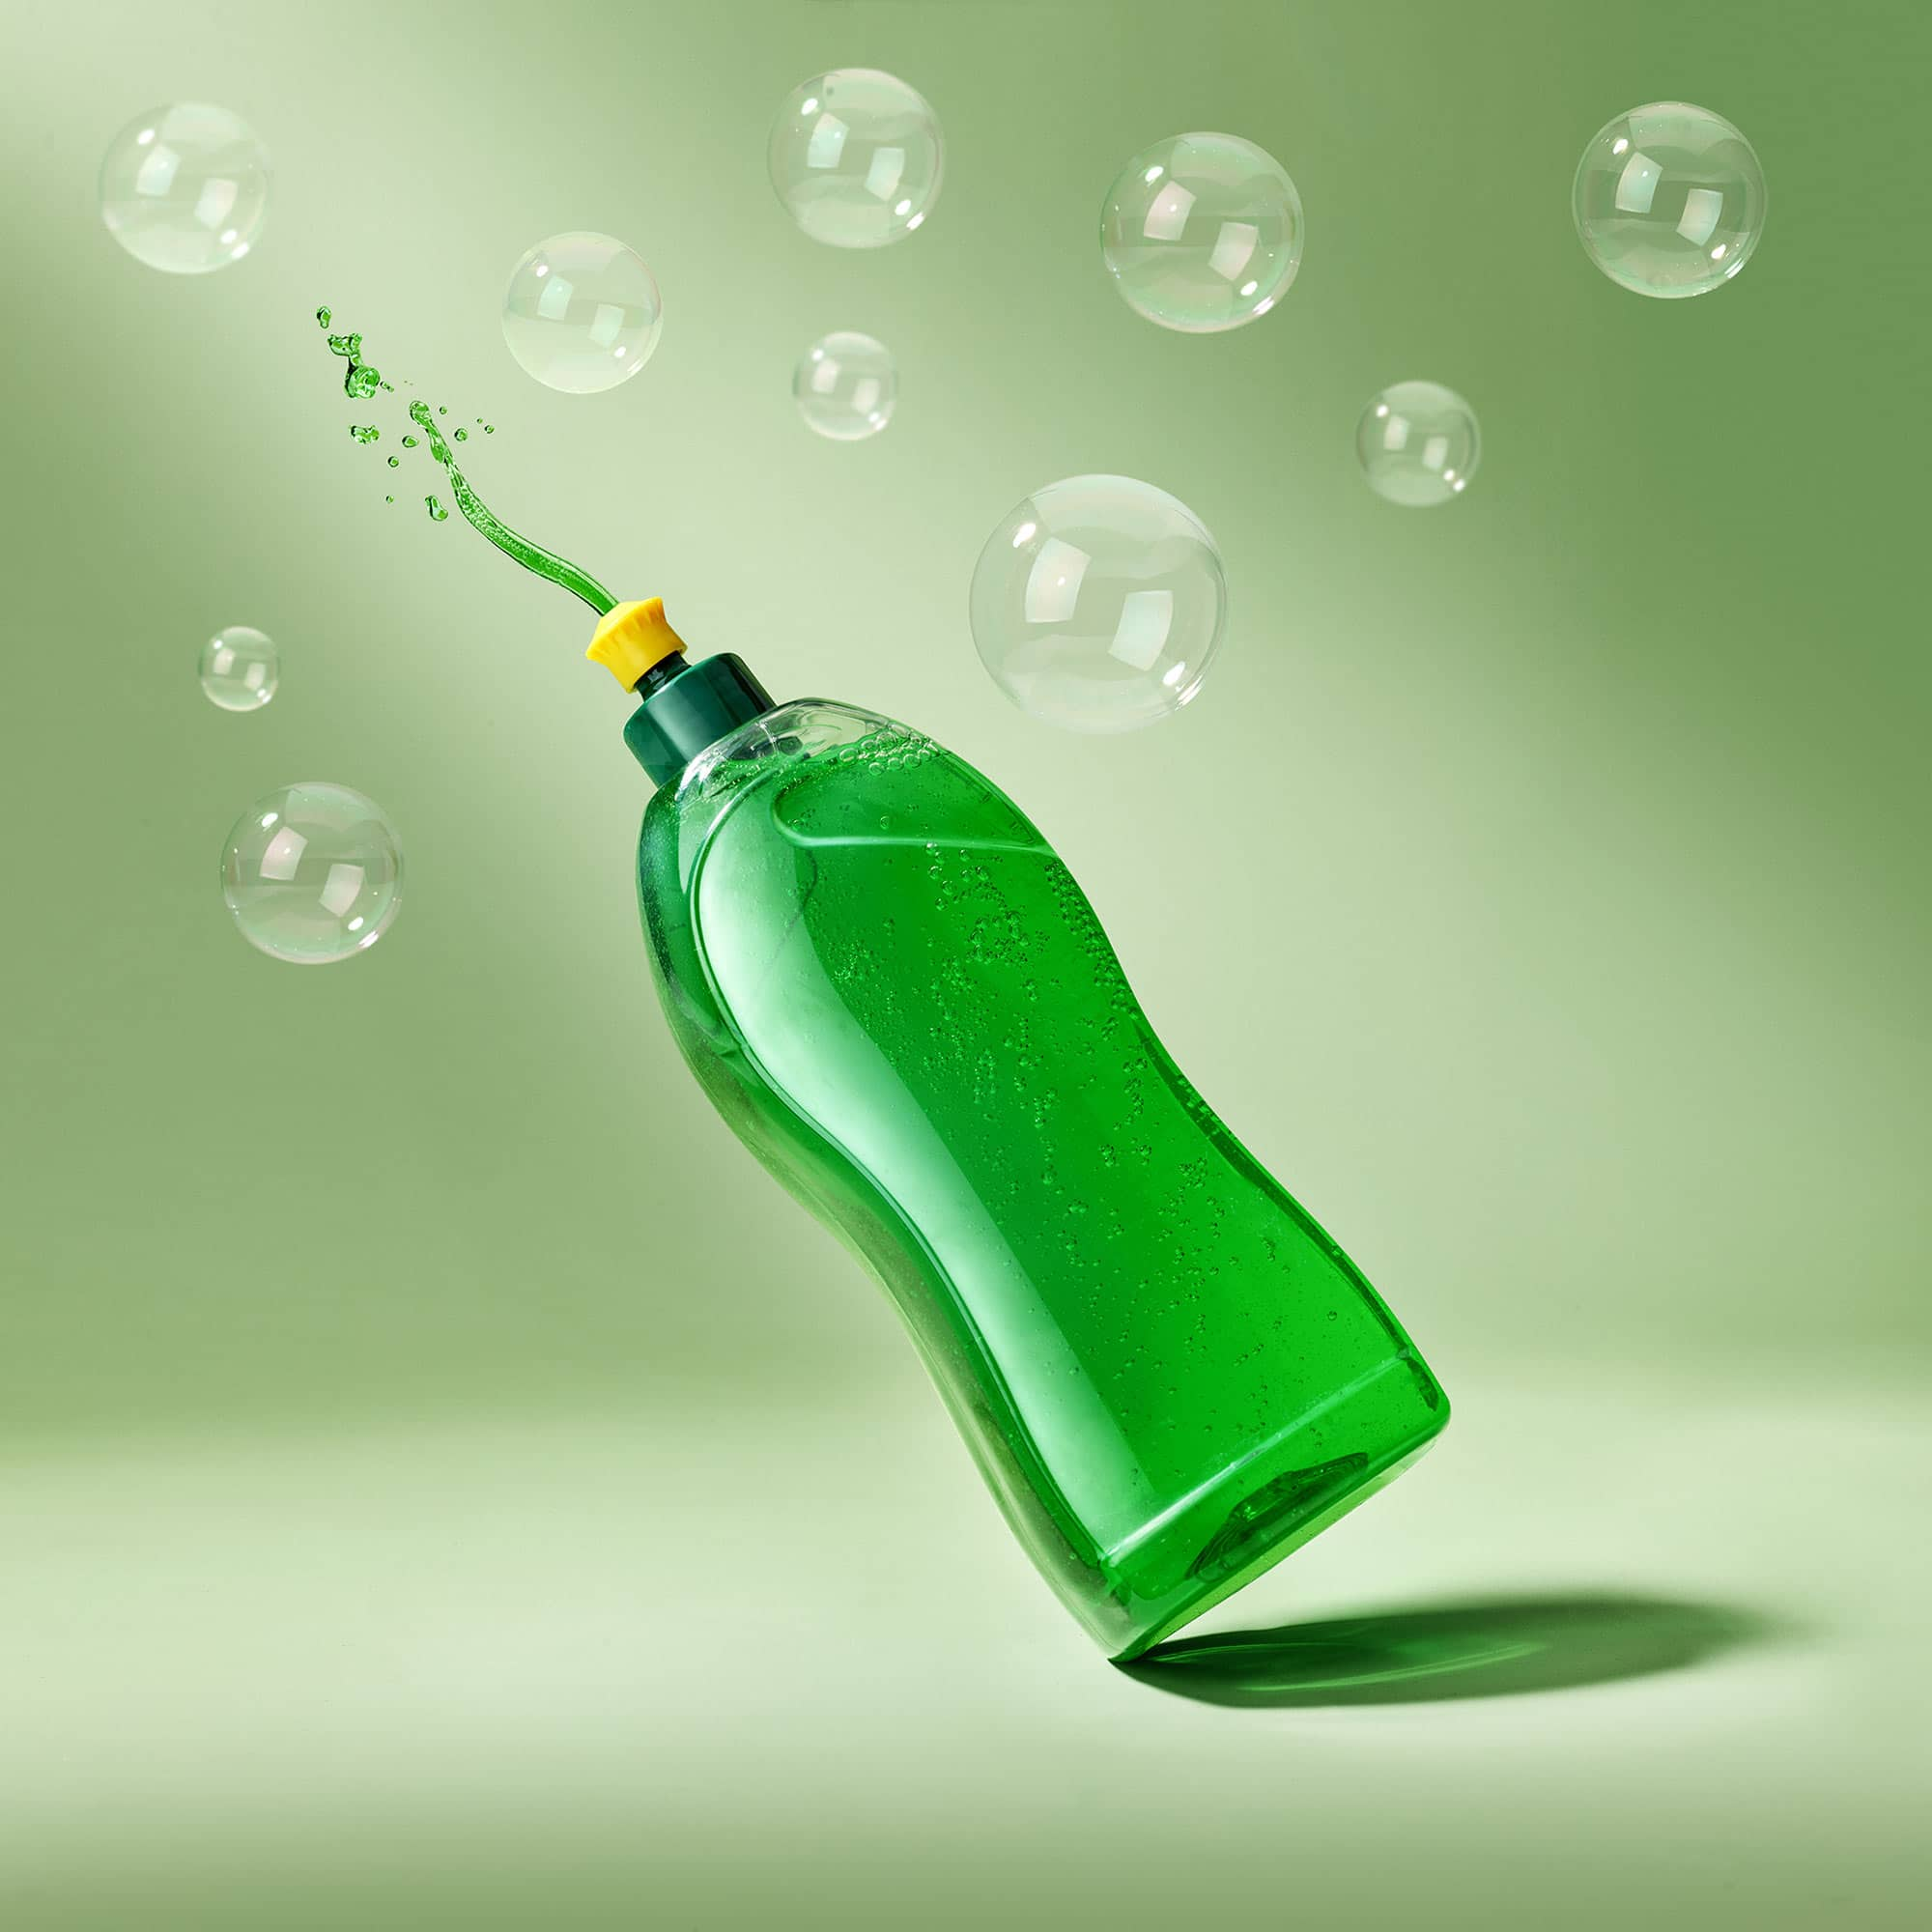 Green Dish Soap Bubbles Still Life Shot for Corepla by Fotografando